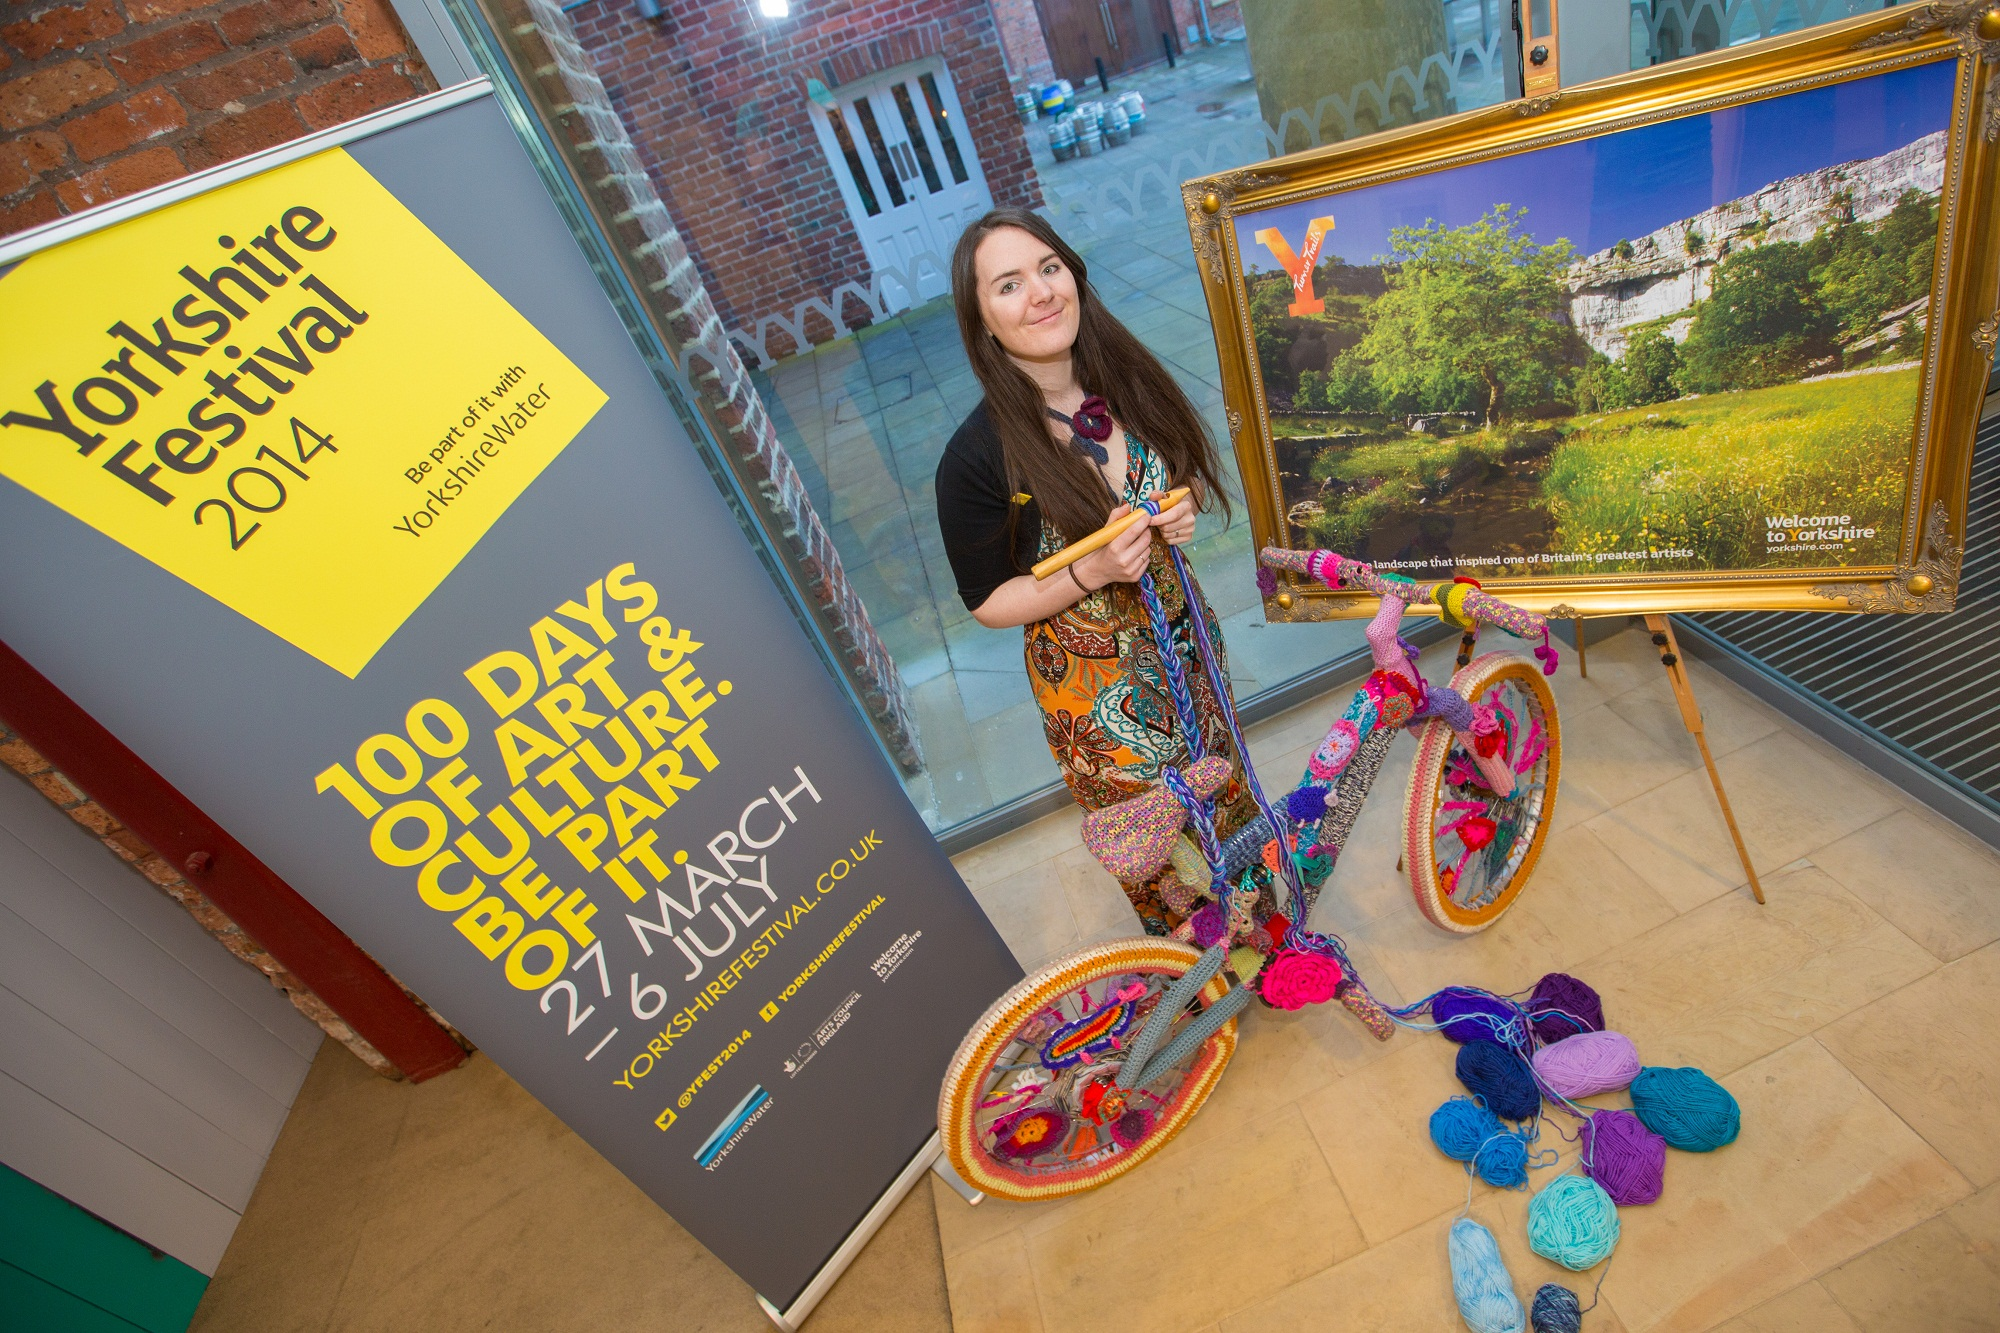 Artist Cassandra Kilbride with one of the knitted bikes, which will form the central focus of a workshop in Haworth